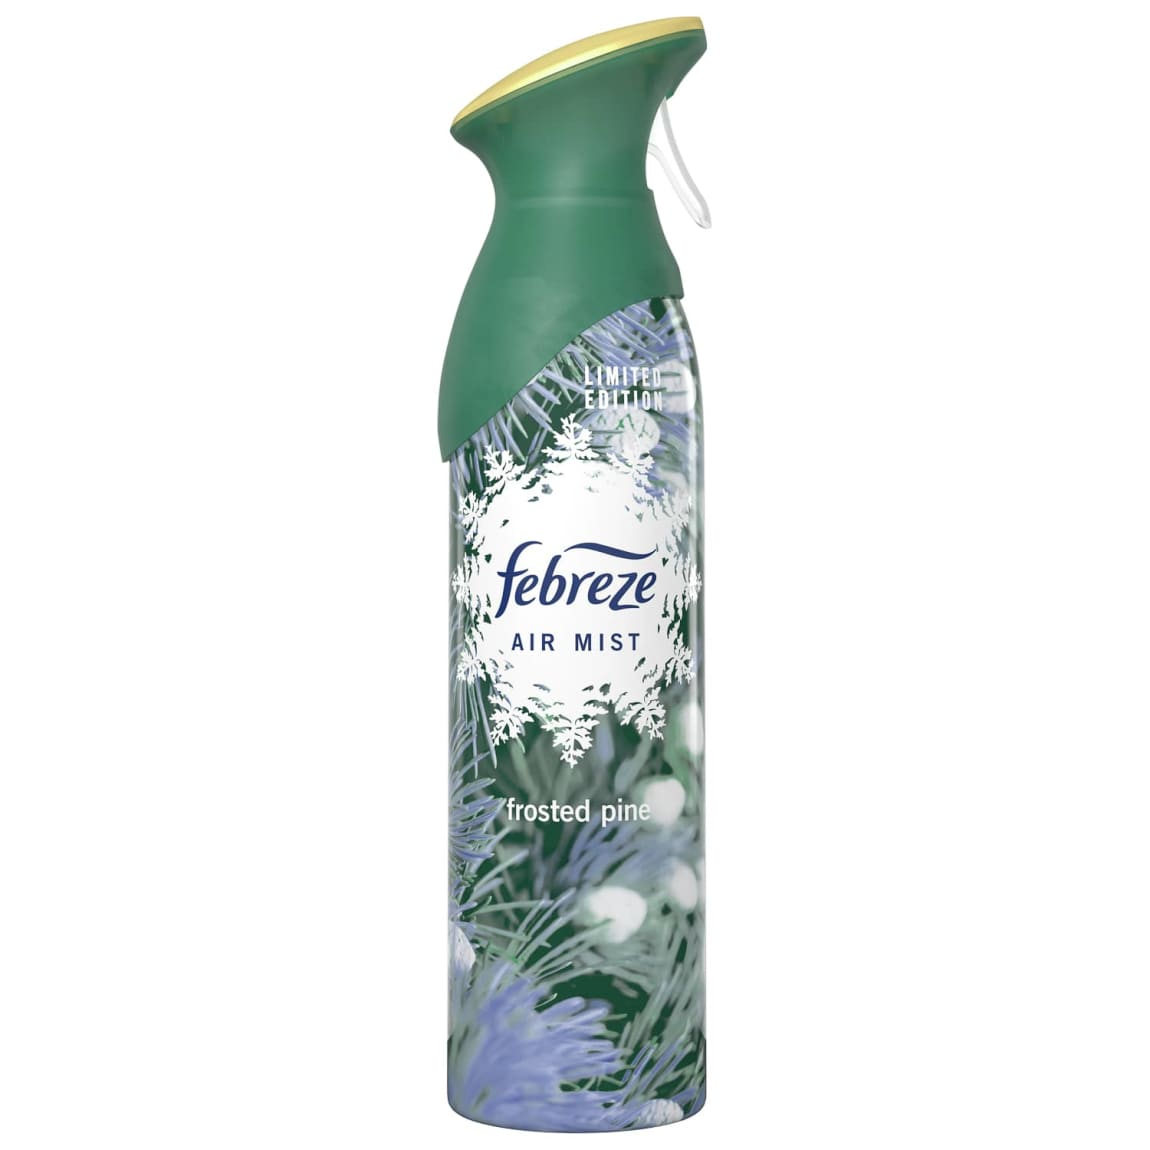 Febreze Air Mist Frosted Pine 300ml